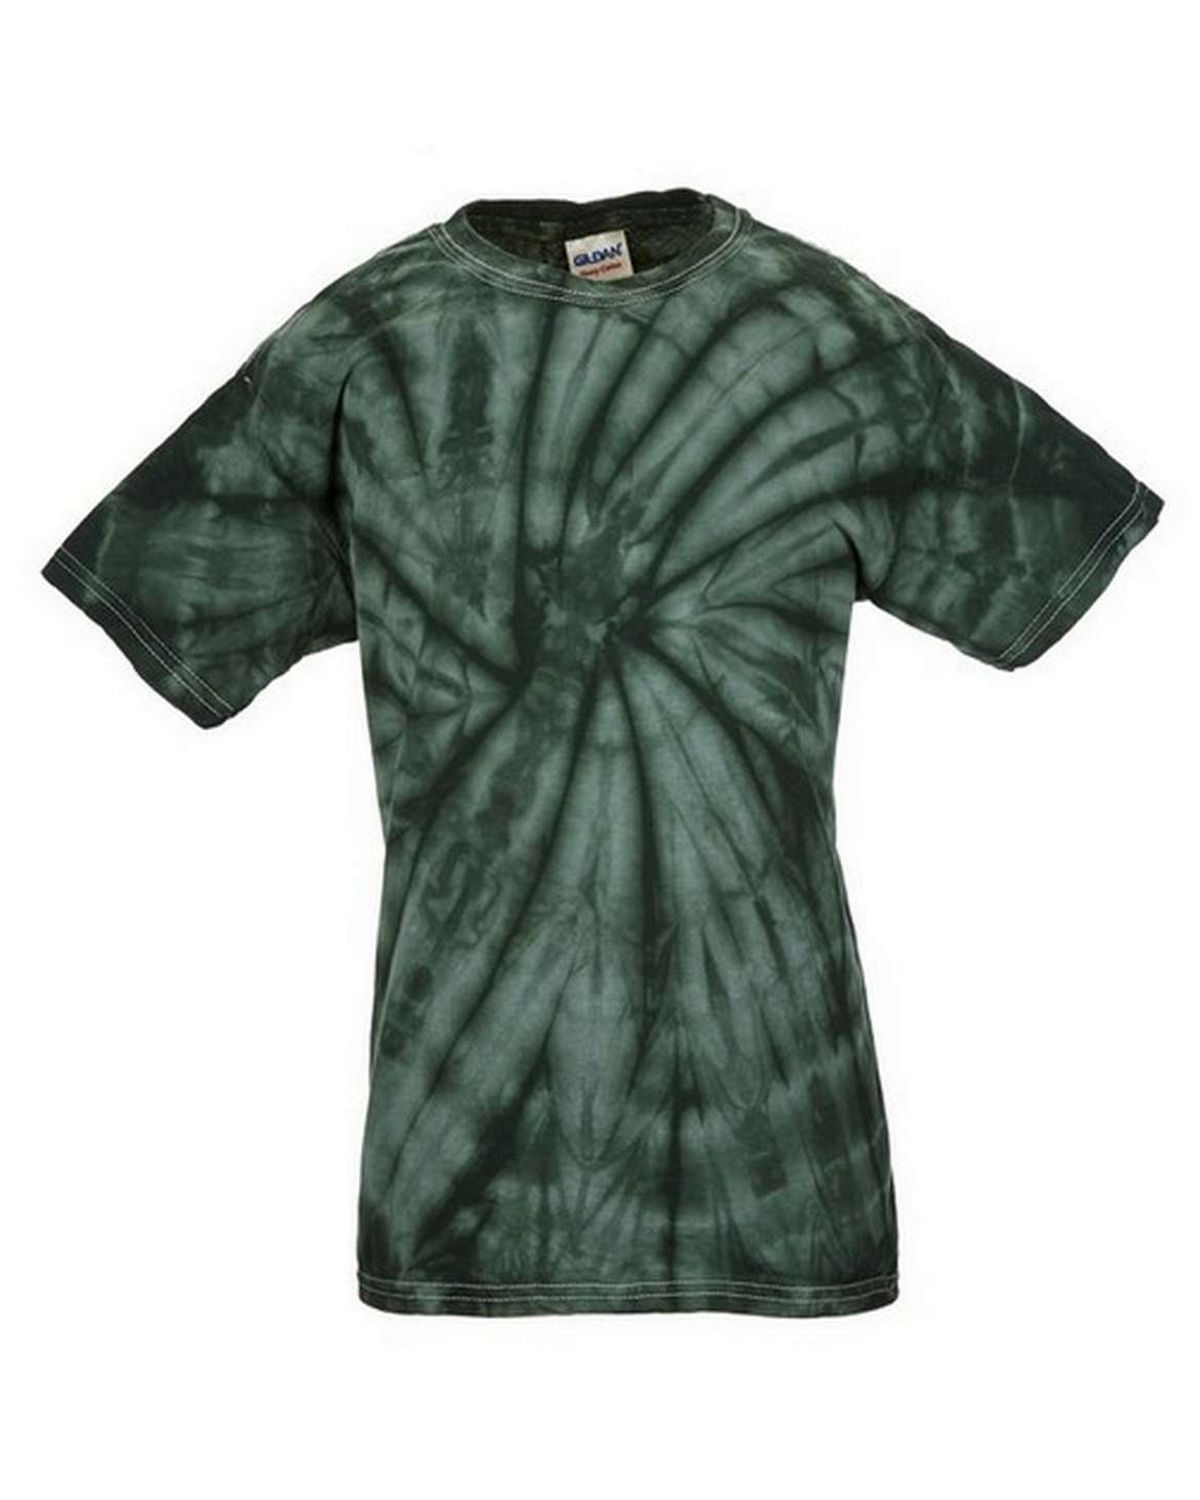 Tie-Dye CD101Y Youth 100% Cotton Spider T-Shirt